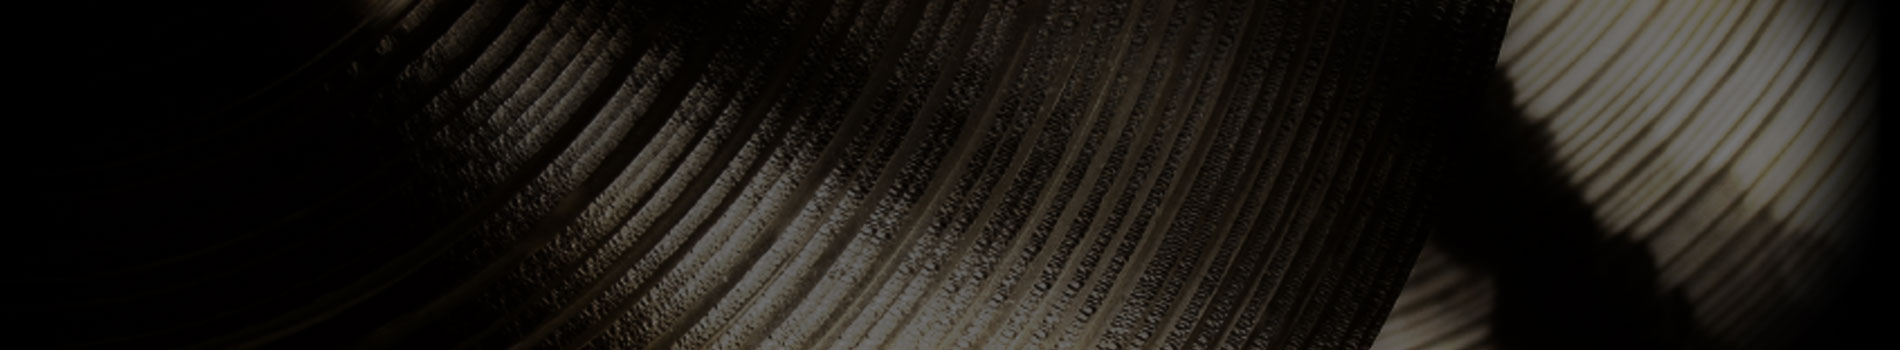 Image of Cymbal Up Close